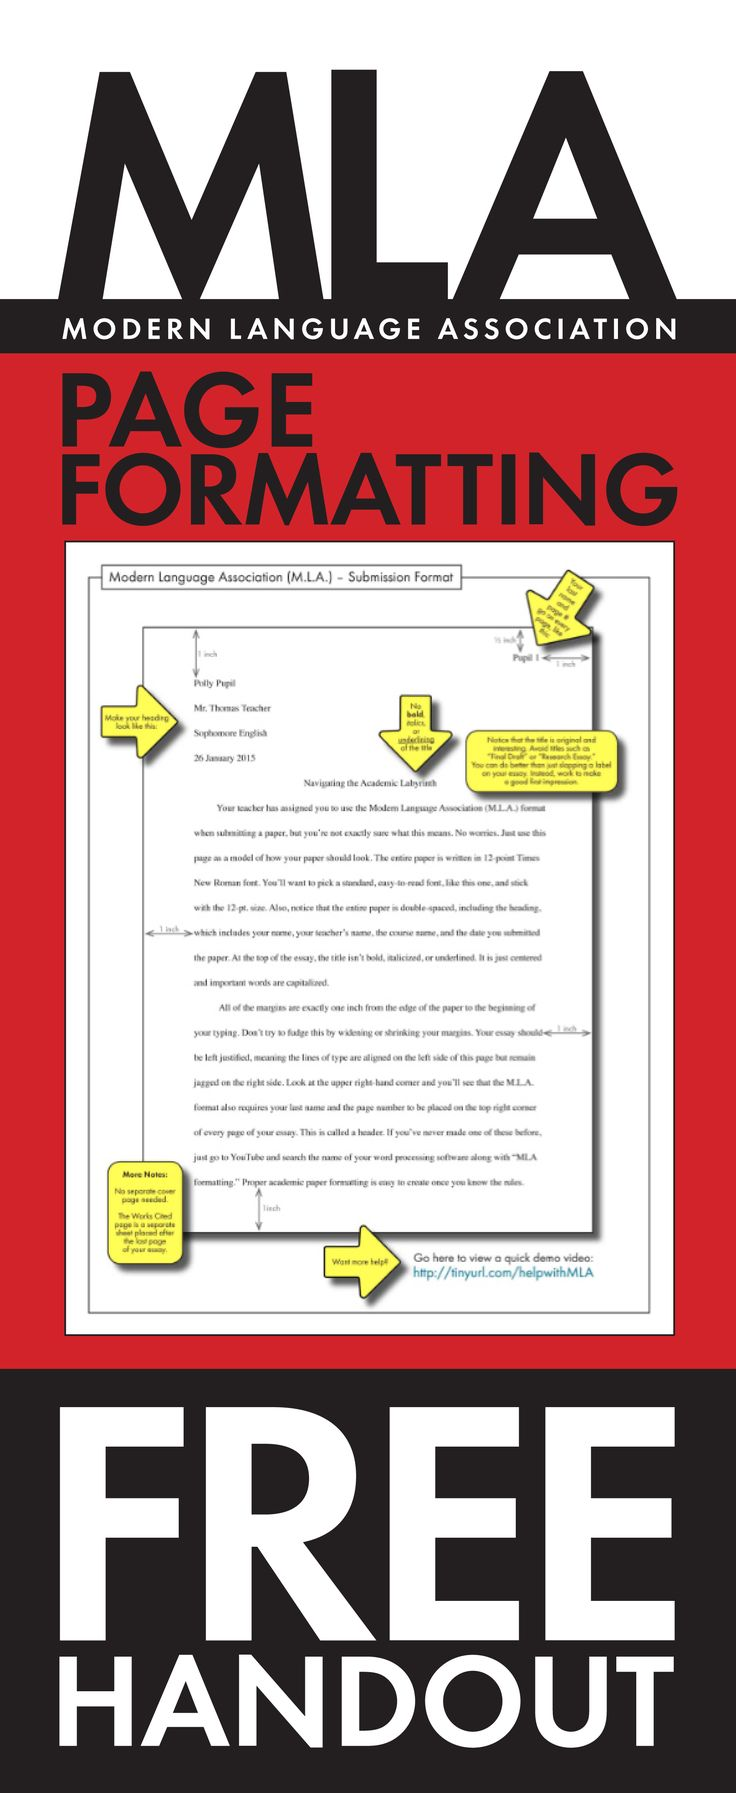 17 best images about writing resources graphic help students understand the proper way to format the first page of their essays according to the modern language association m l a guidelines this